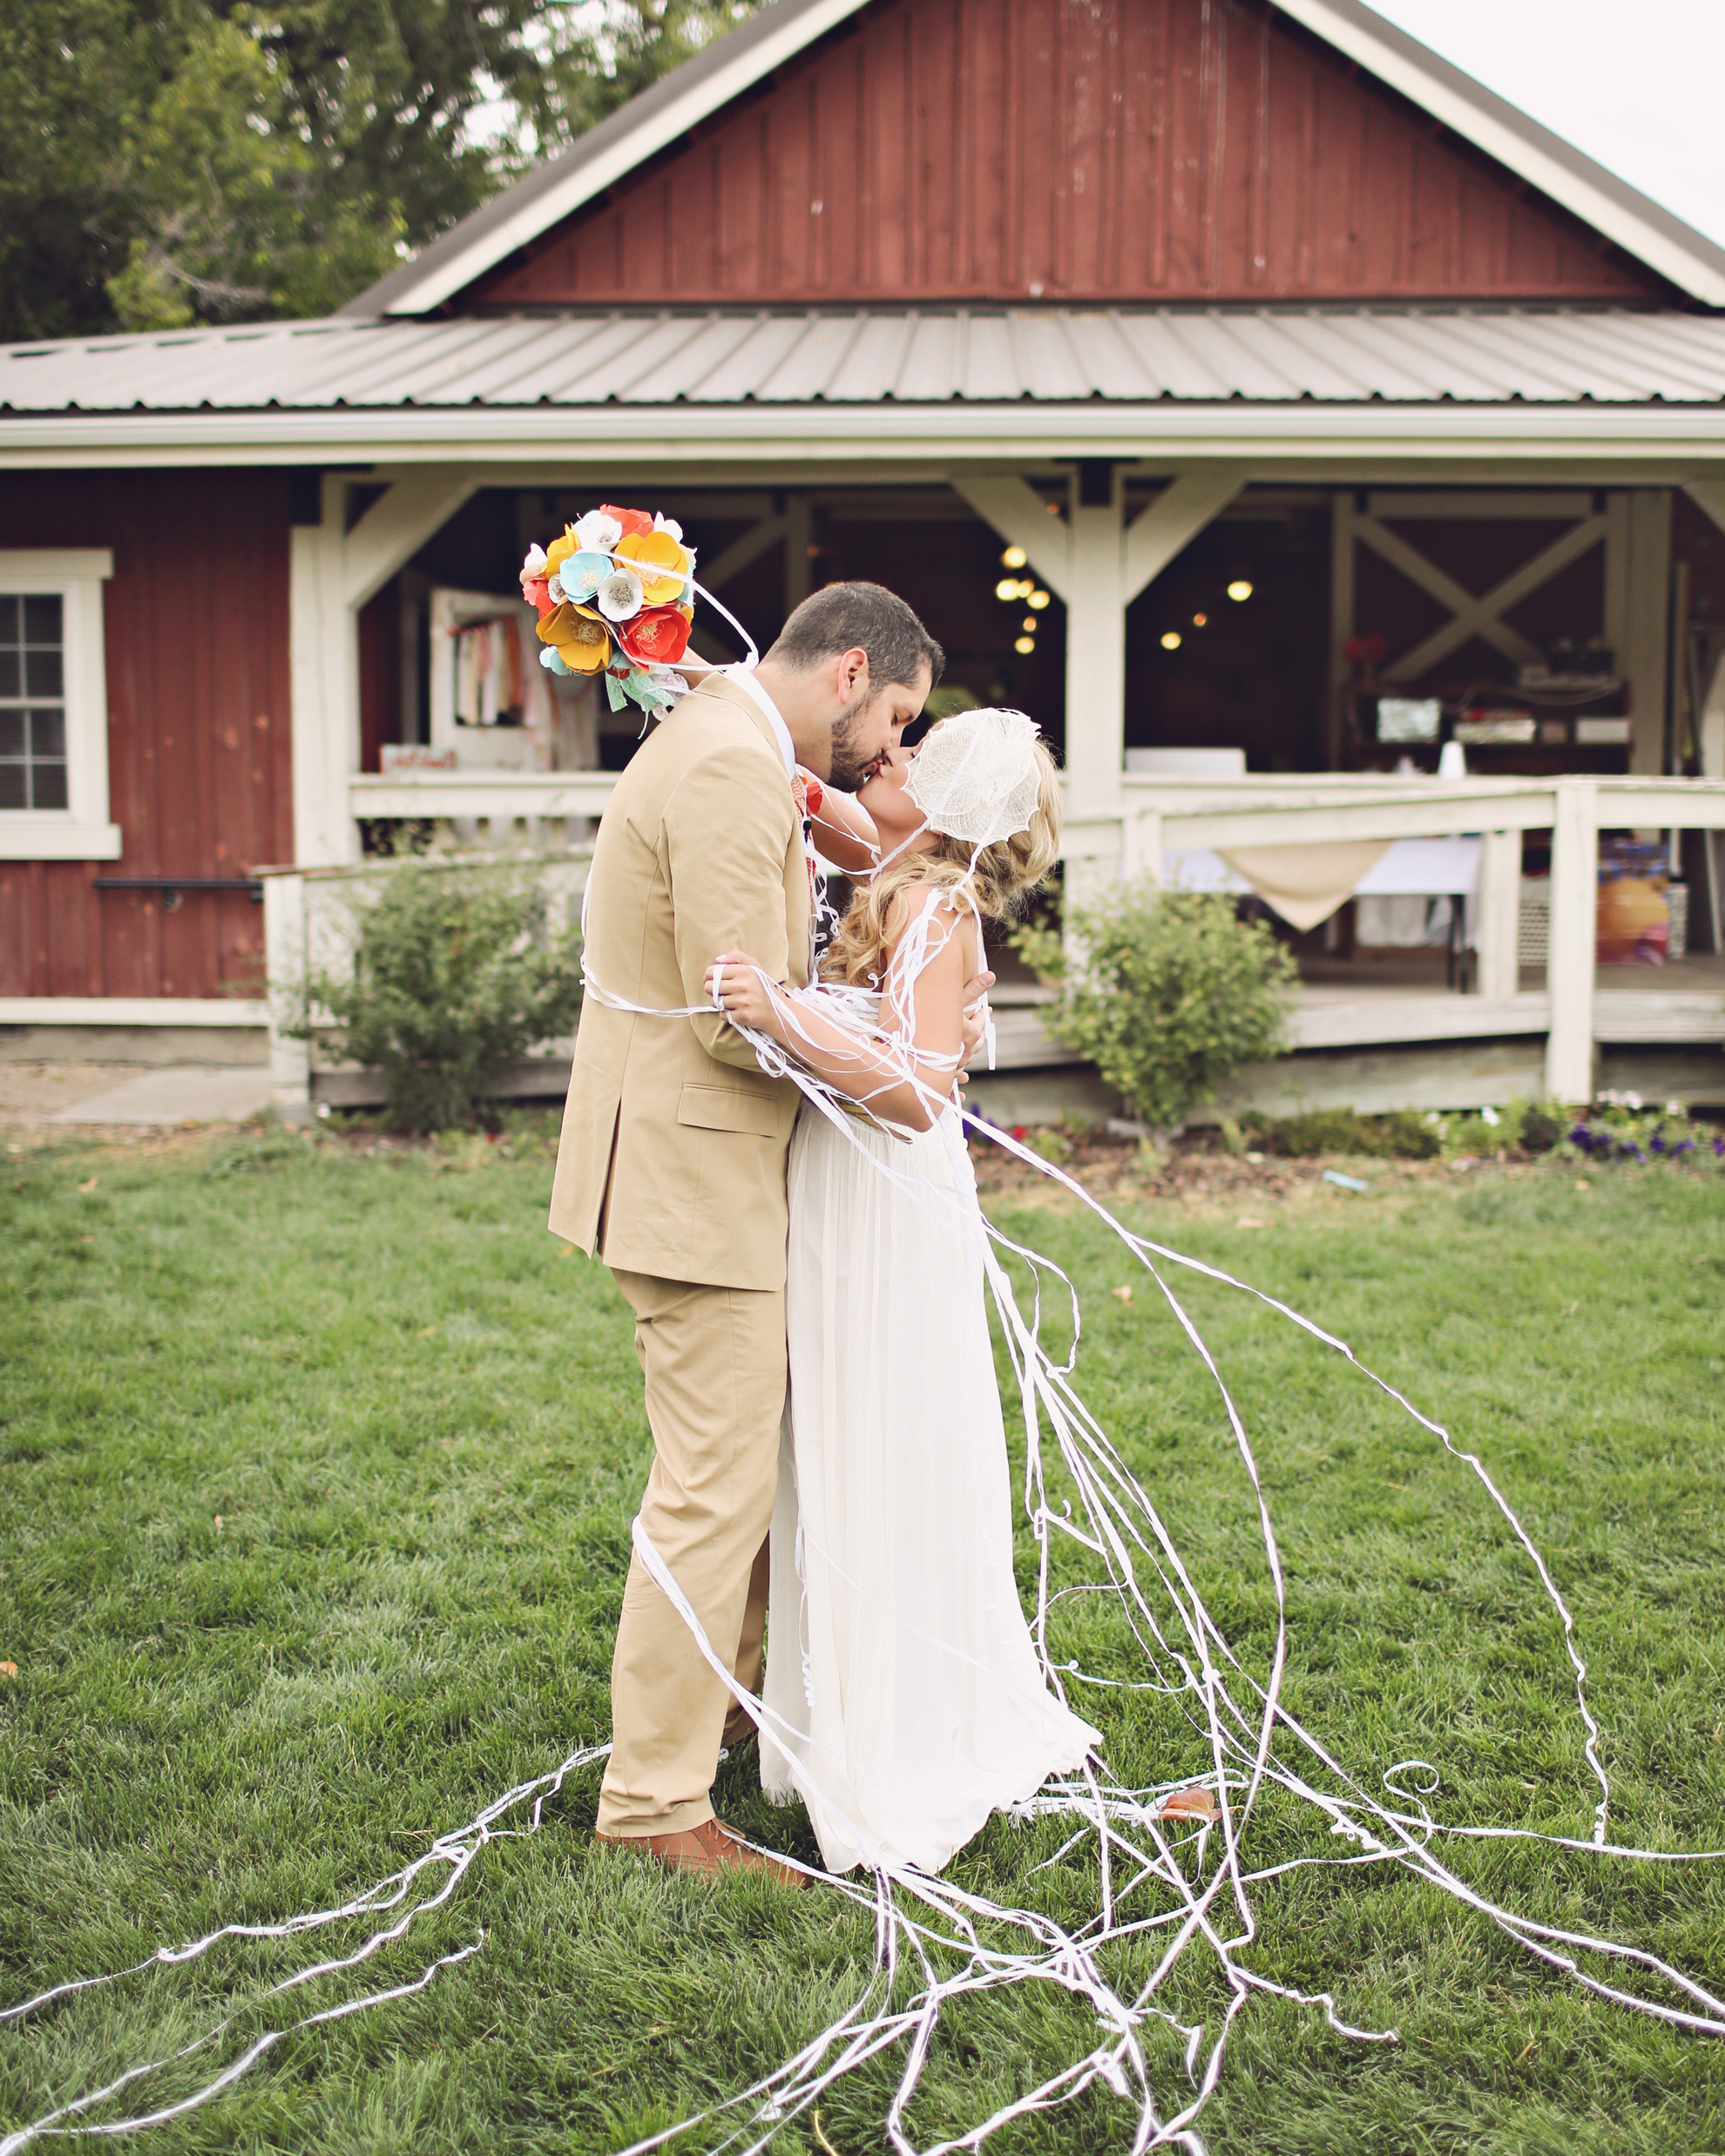 Savvy Ways for Planning a Wedding on a Budget